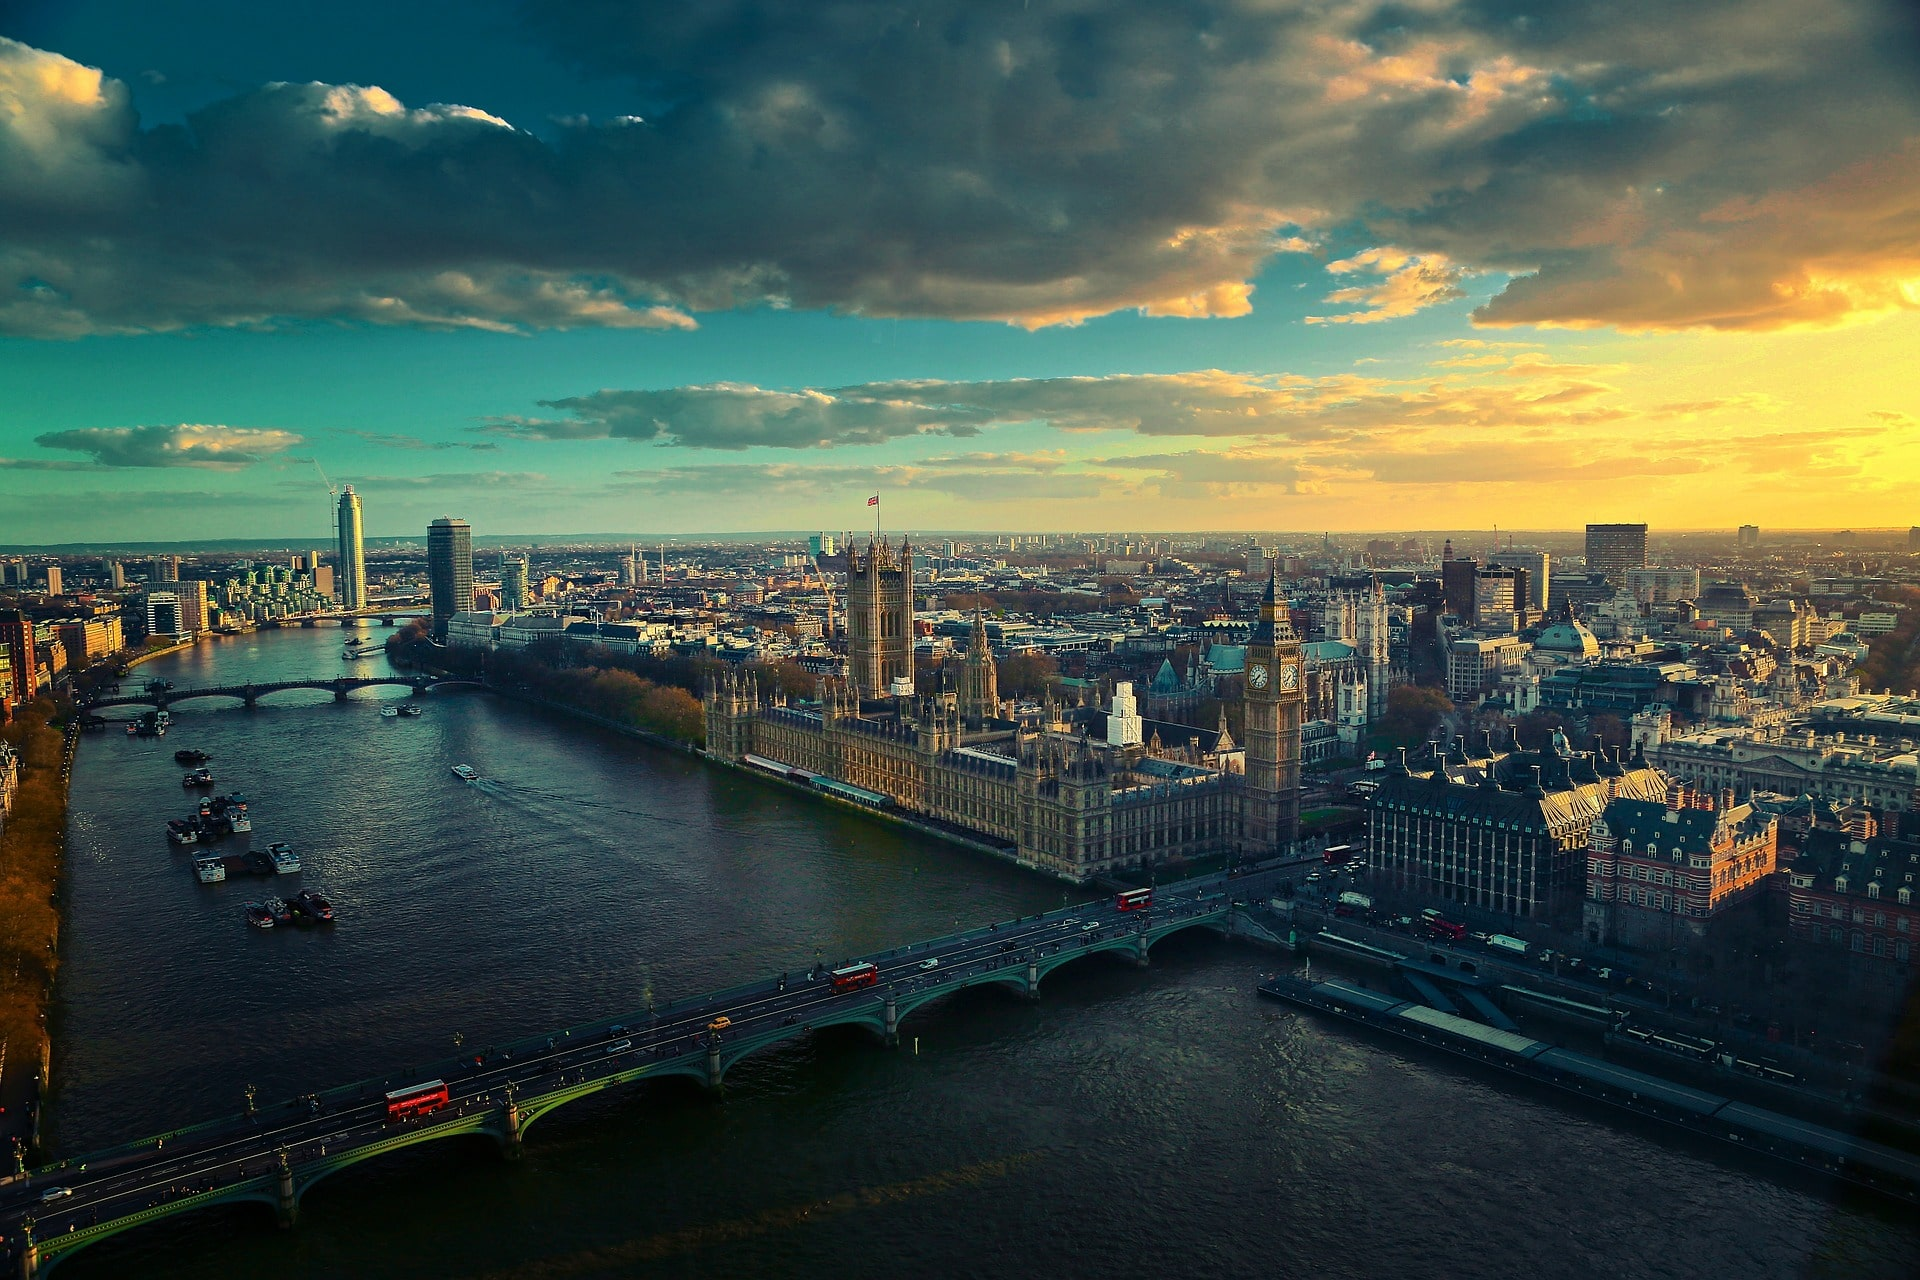 The winding Thames, cutting London in two, is an easy and cool place to visit in London